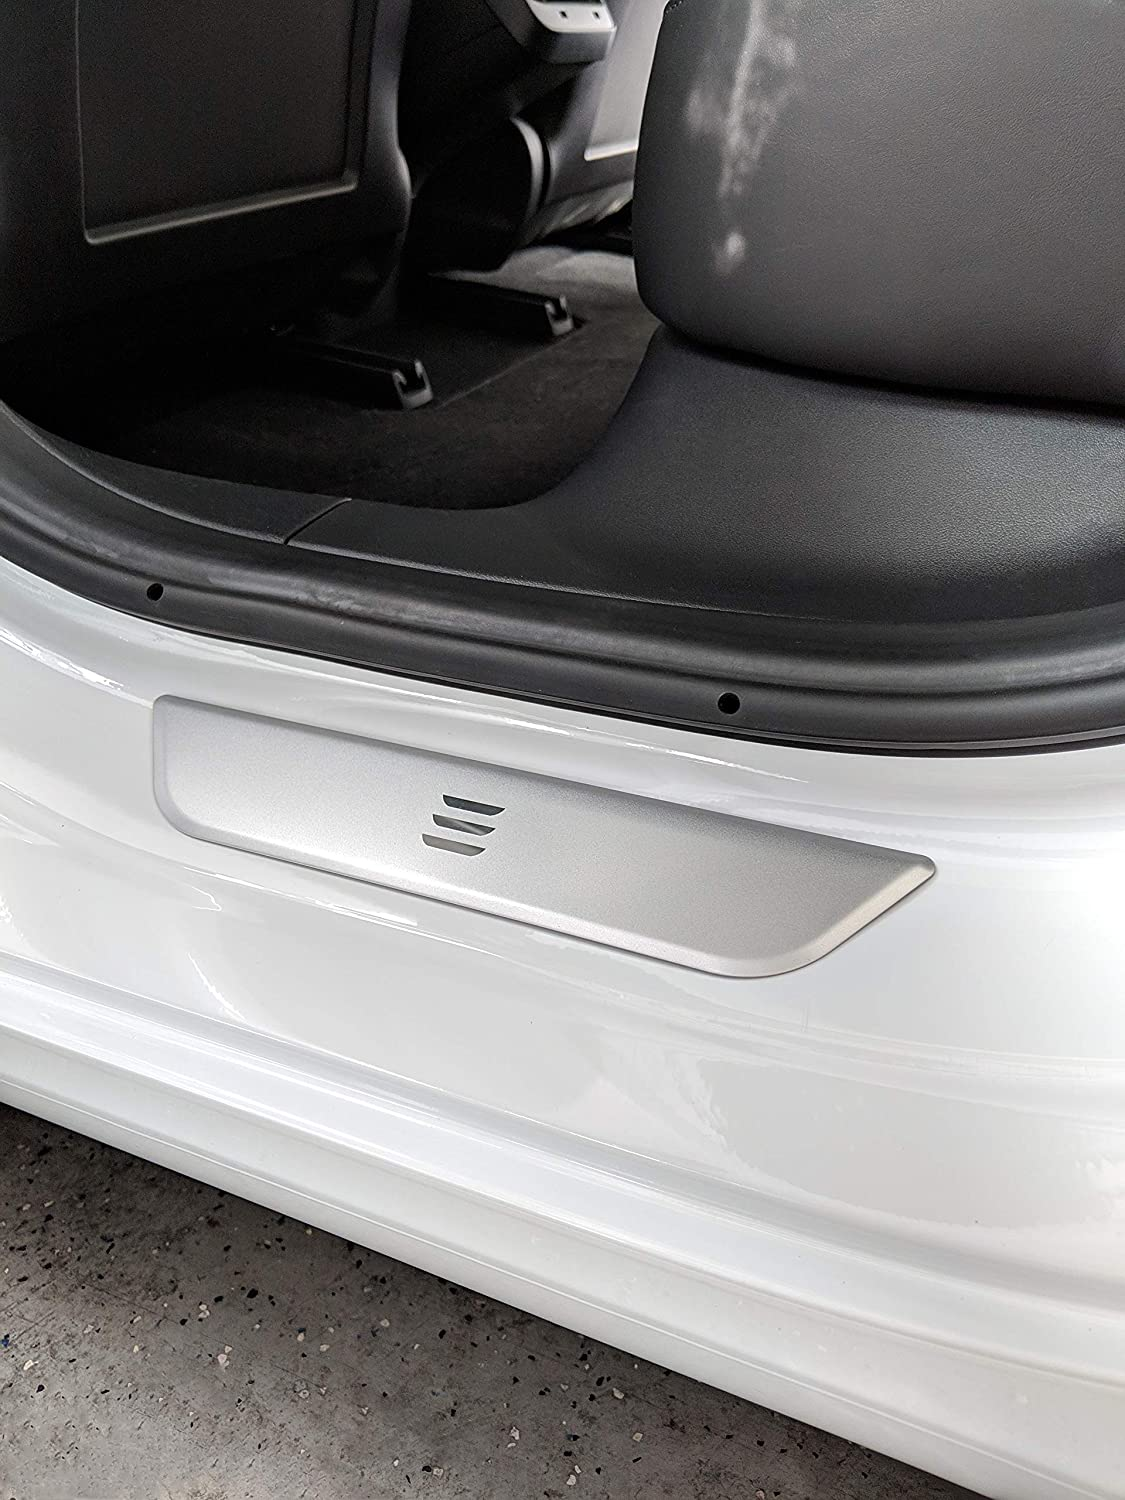 QHO AUTO Stainless Steel Door Sill Scuff Plates for Tesla Model 3 Door Protection-Silver